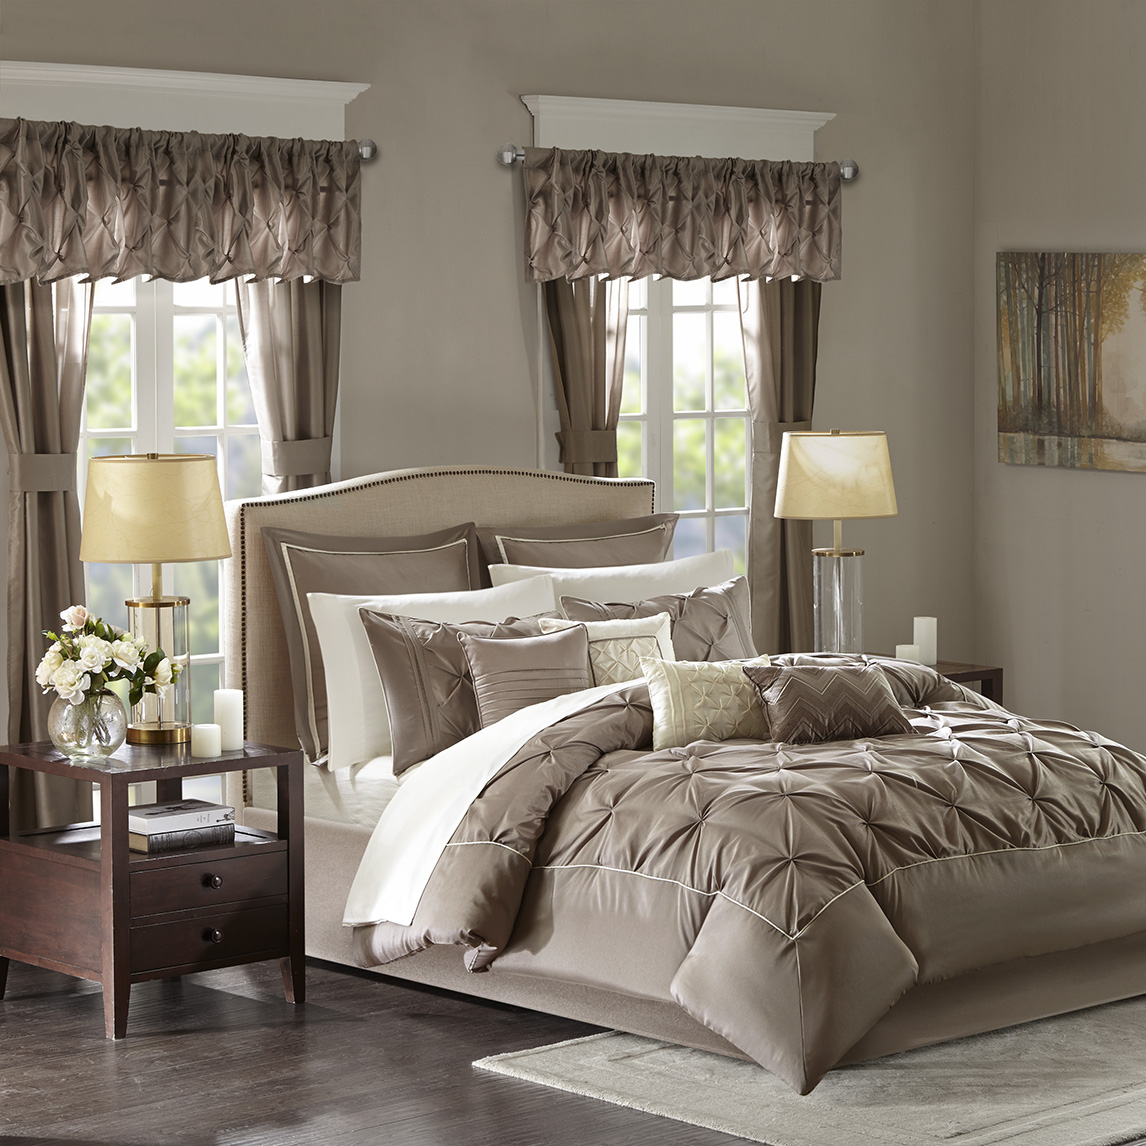 Madison Park Essentials - Joella 24 Piece Room in a Bag - Taupe - Cal King